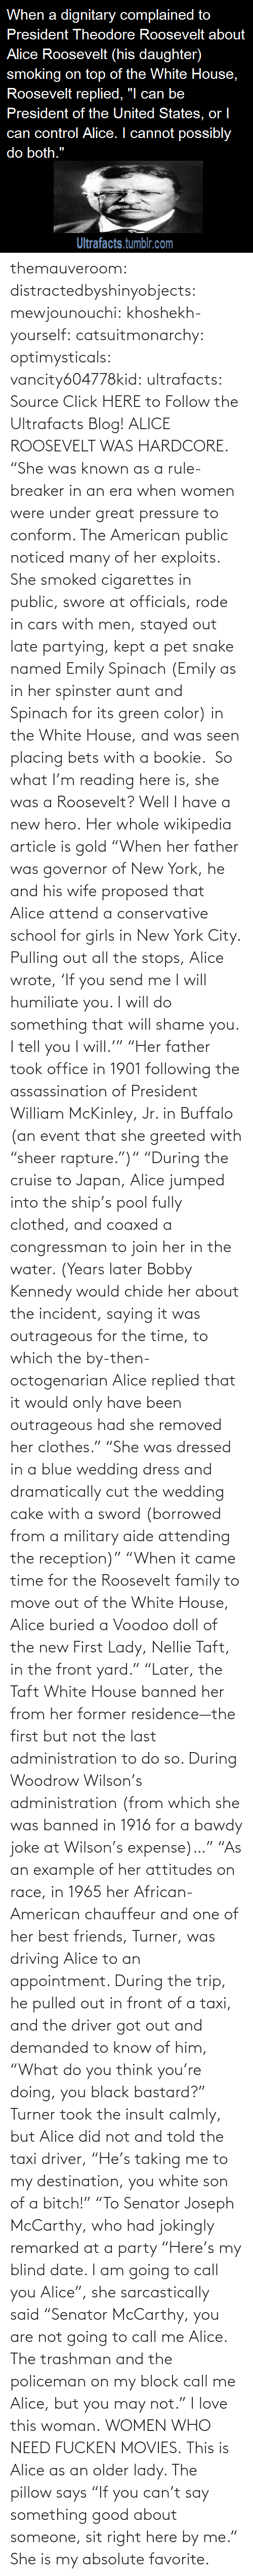 "org: themauveroom: distractedbyshinyobjects:  mewjounouchi:  khoshekh-yourself:  catsuitmonarchy:  optimysticals:  vancity604778kid:  ultrafacts:     Source Click HERE to Follow the Ultrafacts Blog!     ALICE ROOSEVELT WAS HARDCORE. ""She was known as a rule-breaker in an era when women were under great pressure to conform. The American public noticed many of her exploits. She smoked cigarettes in public, swore at officials, rode in cars with men, stayed out late partying, kept a pet snake named Emily Spinach (Emily as in her spinster aunt and Spinach for its green color) in the White House, and was seen placing bets with a bookie.    So what I'm reading here is, she was a Roosevelt?  Well I have a new hero.  Her whole wikipedia article is gold ""When her father was governor of New York, he and his wife proposed that Alice attend a conservative school for girls in New York City. Pulling out all the stops, Alice wrote, 'If you send me I will humiliate you. I will do something that will shame you. I tell you I will.'"" ""Her father took office in 1901 following the assassination of President William McKinley, Jr. in Buffalo (an event that she greeted with ""sheer rapture."")"" ""During the cruise to Japan, Alice jumped into the ship's pool fully clothed, and coaxed a congressman to join her in the water. (Years later Bobby Kennedy would chide her about the incident, saying it was outrageous for the time, to which the by-then-octogenarian Alice replied that it would only have been outrageous had she removed her clothes."" ""She was dressed in a blue wedding dress and dramatically cut the wedding cake with a sword (borrowed from a military aide attending the reception)"" ""When it came time for the Roosevelt family to move out of the White House, Alice buried a Voodoo doll of the new First Lady, Nellie Taft, in the front yard."" ""Later, the Taft White House banned her from her former residence—the first but not the last administration to do so. During Woodrow Wilson's administration (from which she was banned in 1916 for a bawdy joke at Wilson's expense)…"" ""As an example of her attitudes on race, in 1965 her African-American chauffeur and one of her best friends, Turner, was driving Alice to an appointment. During the trip, he pulled out in front of a taxi, and the driver got out and demanded to know of him, ""What do you think you're doing, you black bastard?"" Turner took the insult calmly, but Alice did not and told the taxi driver, ""He's taking me to my destination, you white son of a bitch!"" ""To Senator Joseph McCarthy, who had jokingly remarked at a party ""Here's my blind date. I am going to call you Alice"", she sarcastically said ""Senator McCarthy, you are not going to call me Alice. The trashman and the policeman on my block call me Alice, but you may not.""  I love this woman.  WOMEN WHO NEED FUCKEN MOVIES.   This is Alice as an older lady. The pillow says ""If you can't say something good about someone, sit right here by me.""  She is my absolute favorite."